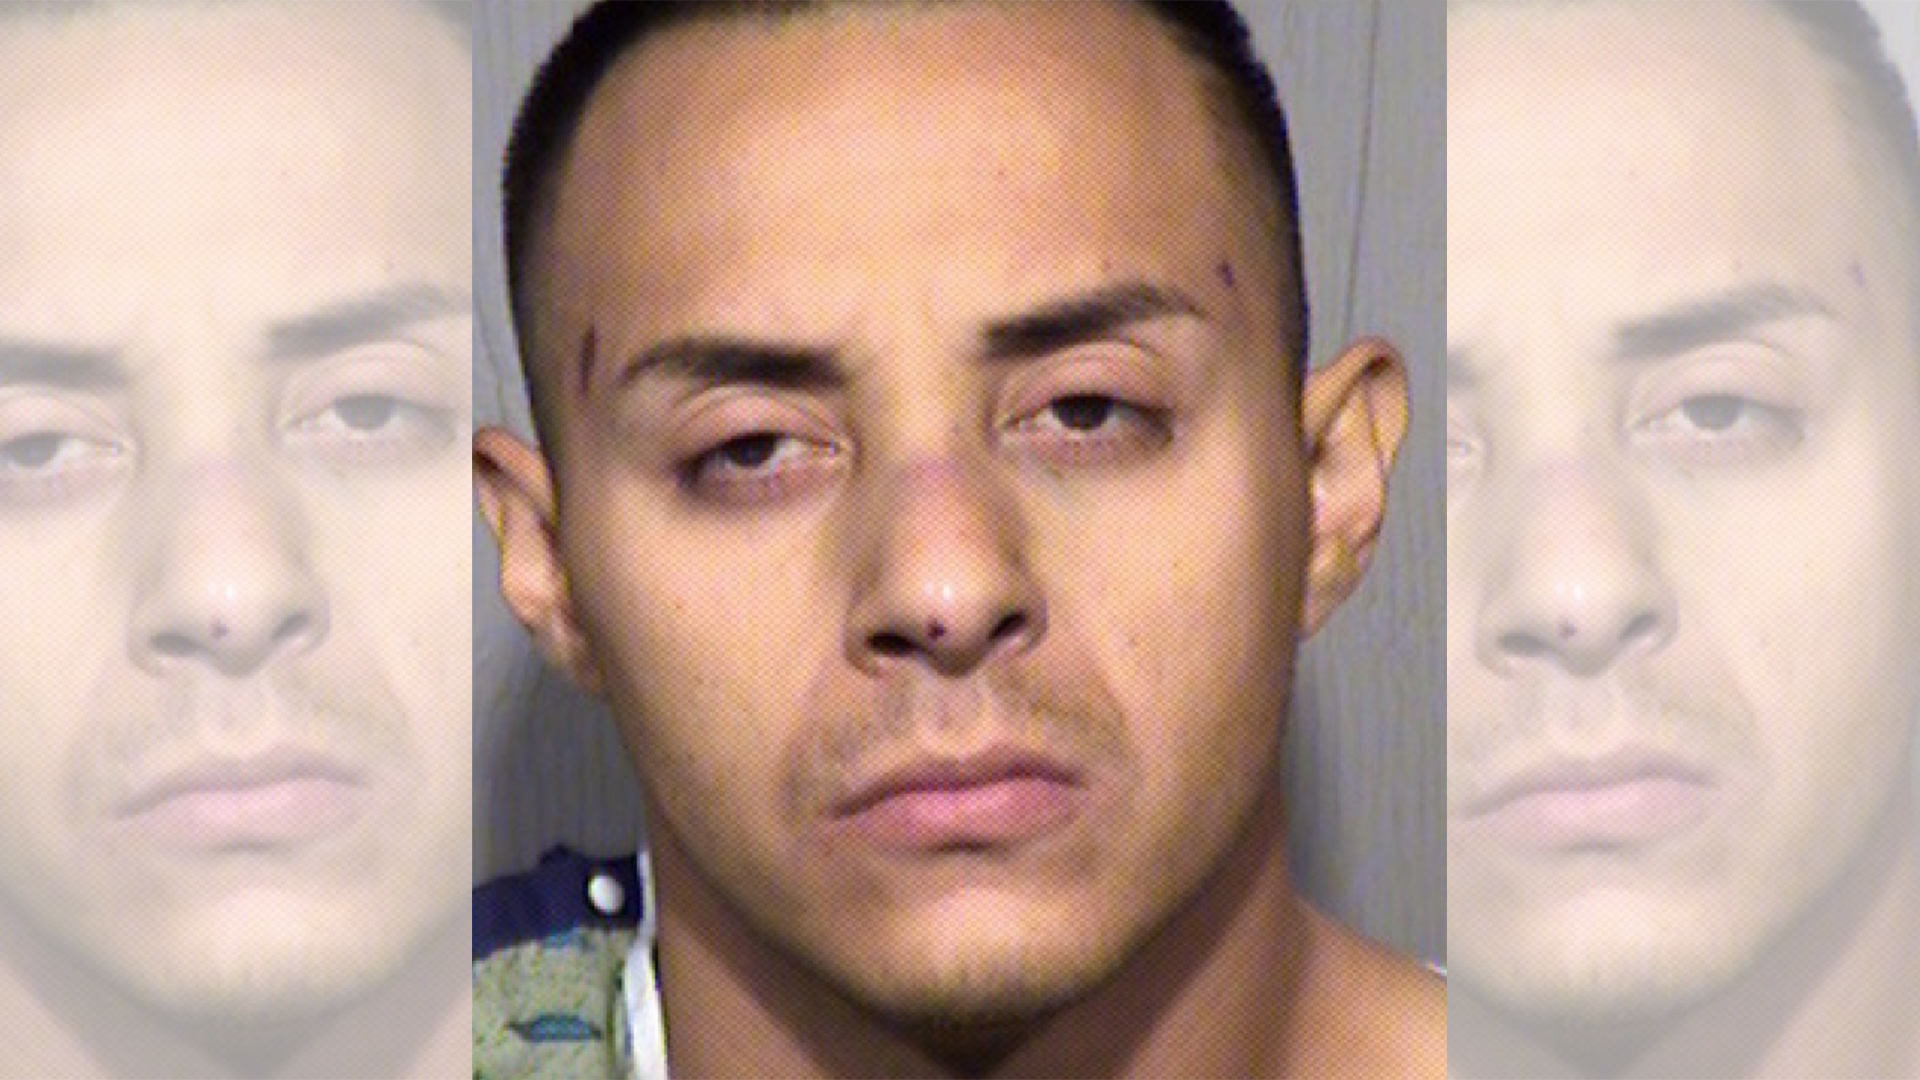 Man who murdered Phoenix Police K9 sentenced to just 25 years in prison